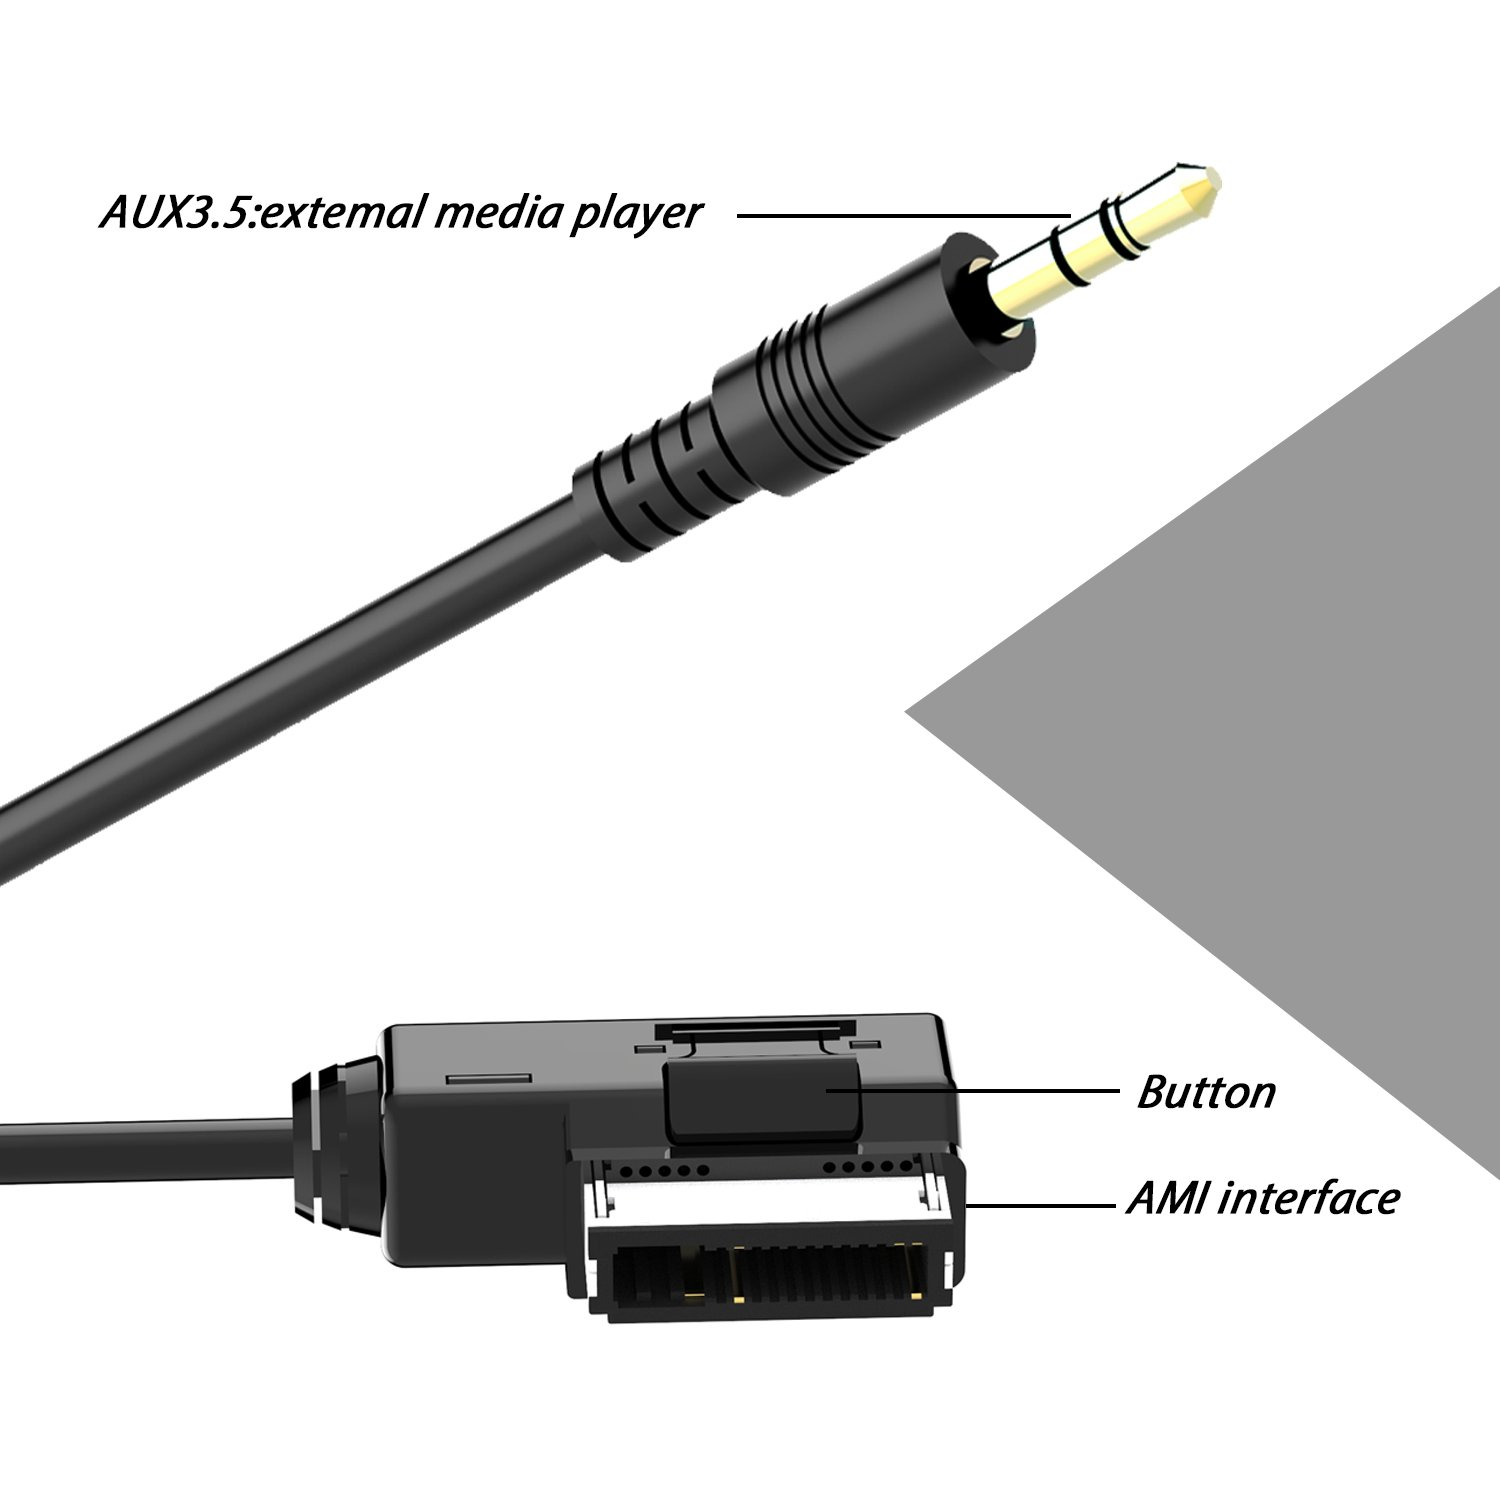 chelink Audi Music Adapter Kabel Portable 3,5/mm AUX-In MP3/Music Adapter Kabel f/ür Auto Audi//A3//A4//A5//A6//A8//Q5//Q7//R8//TT mit Smartphone